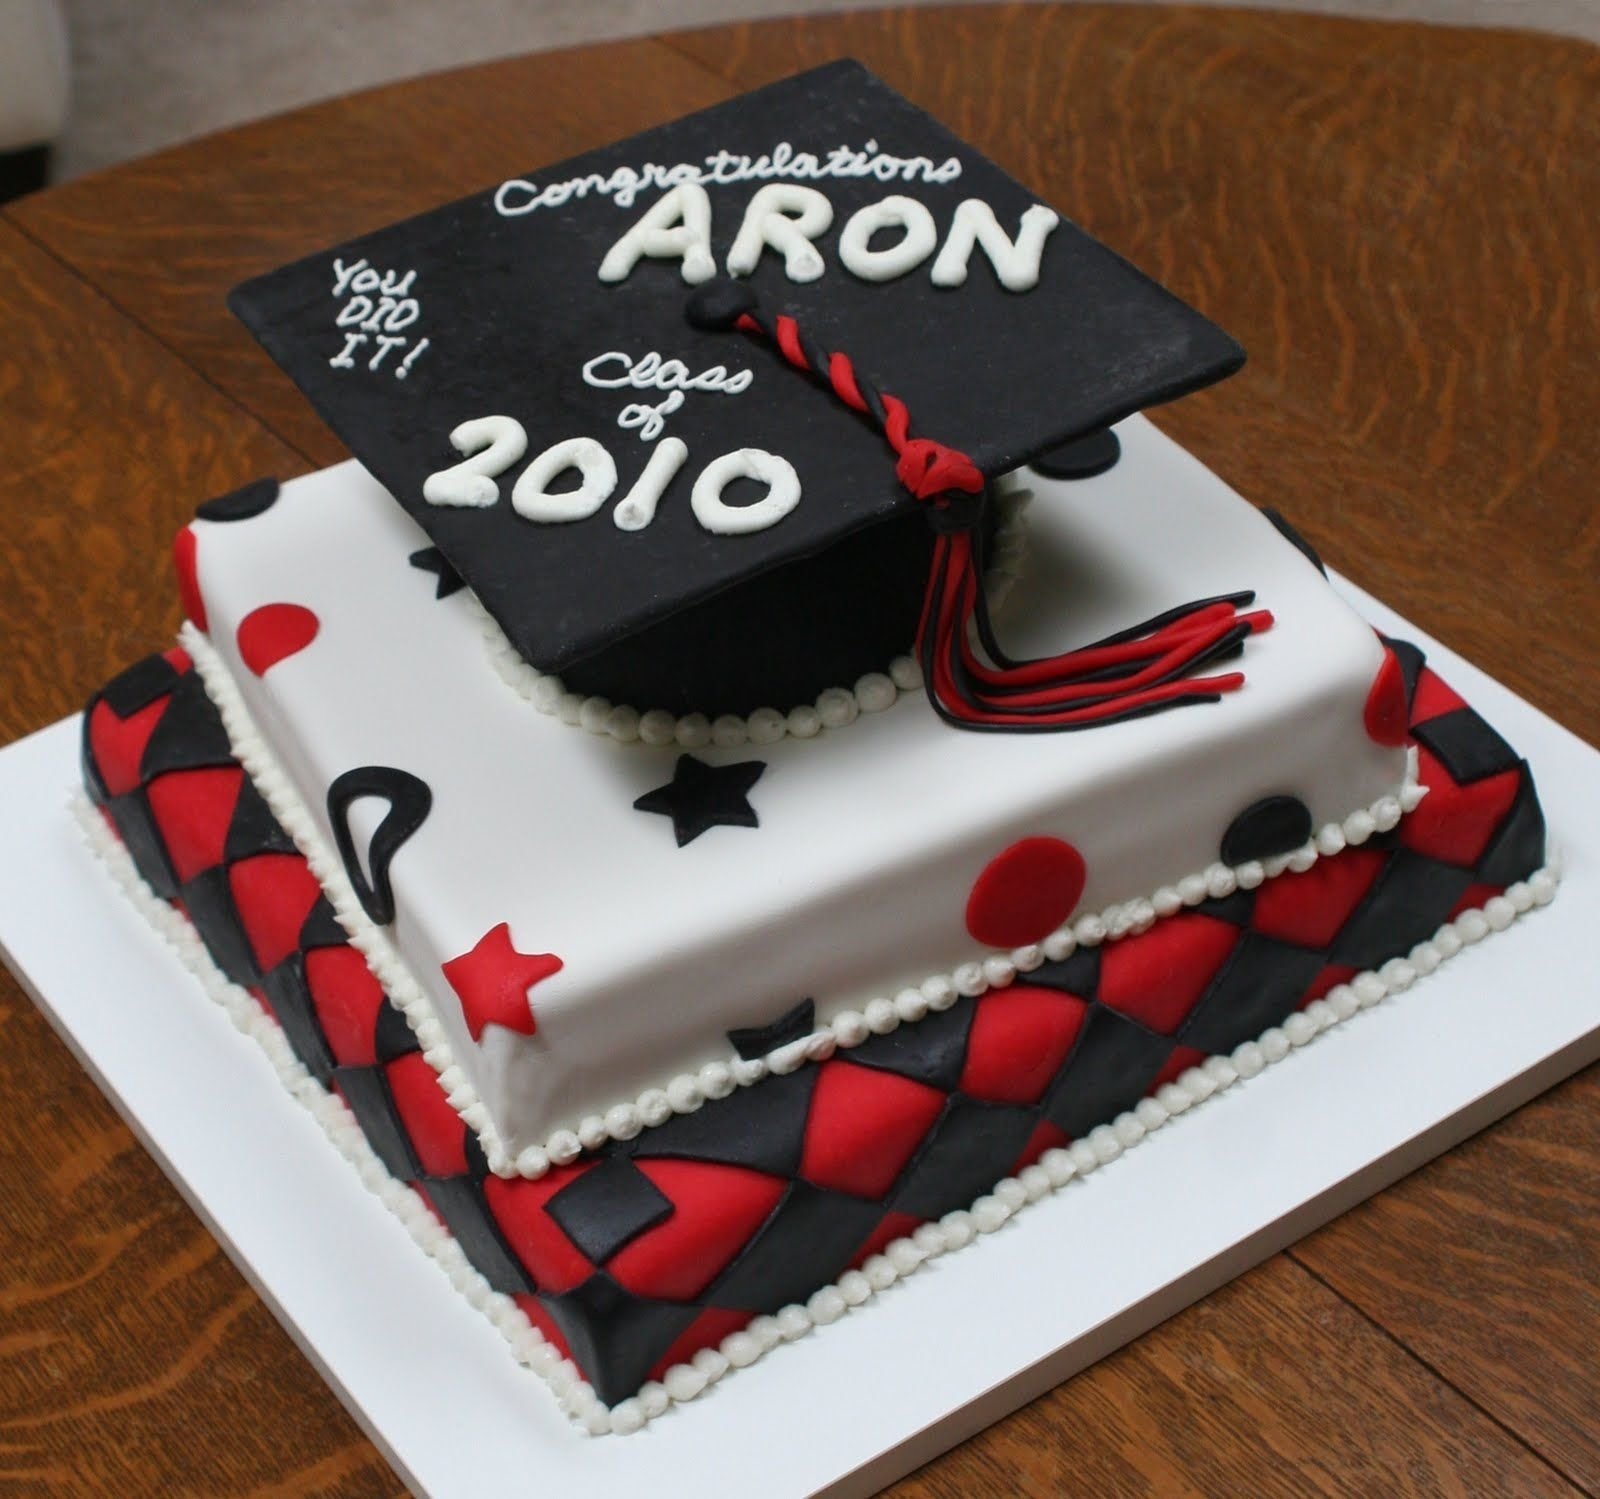 image detail for -amazing cakesvanessa!: high school graduation